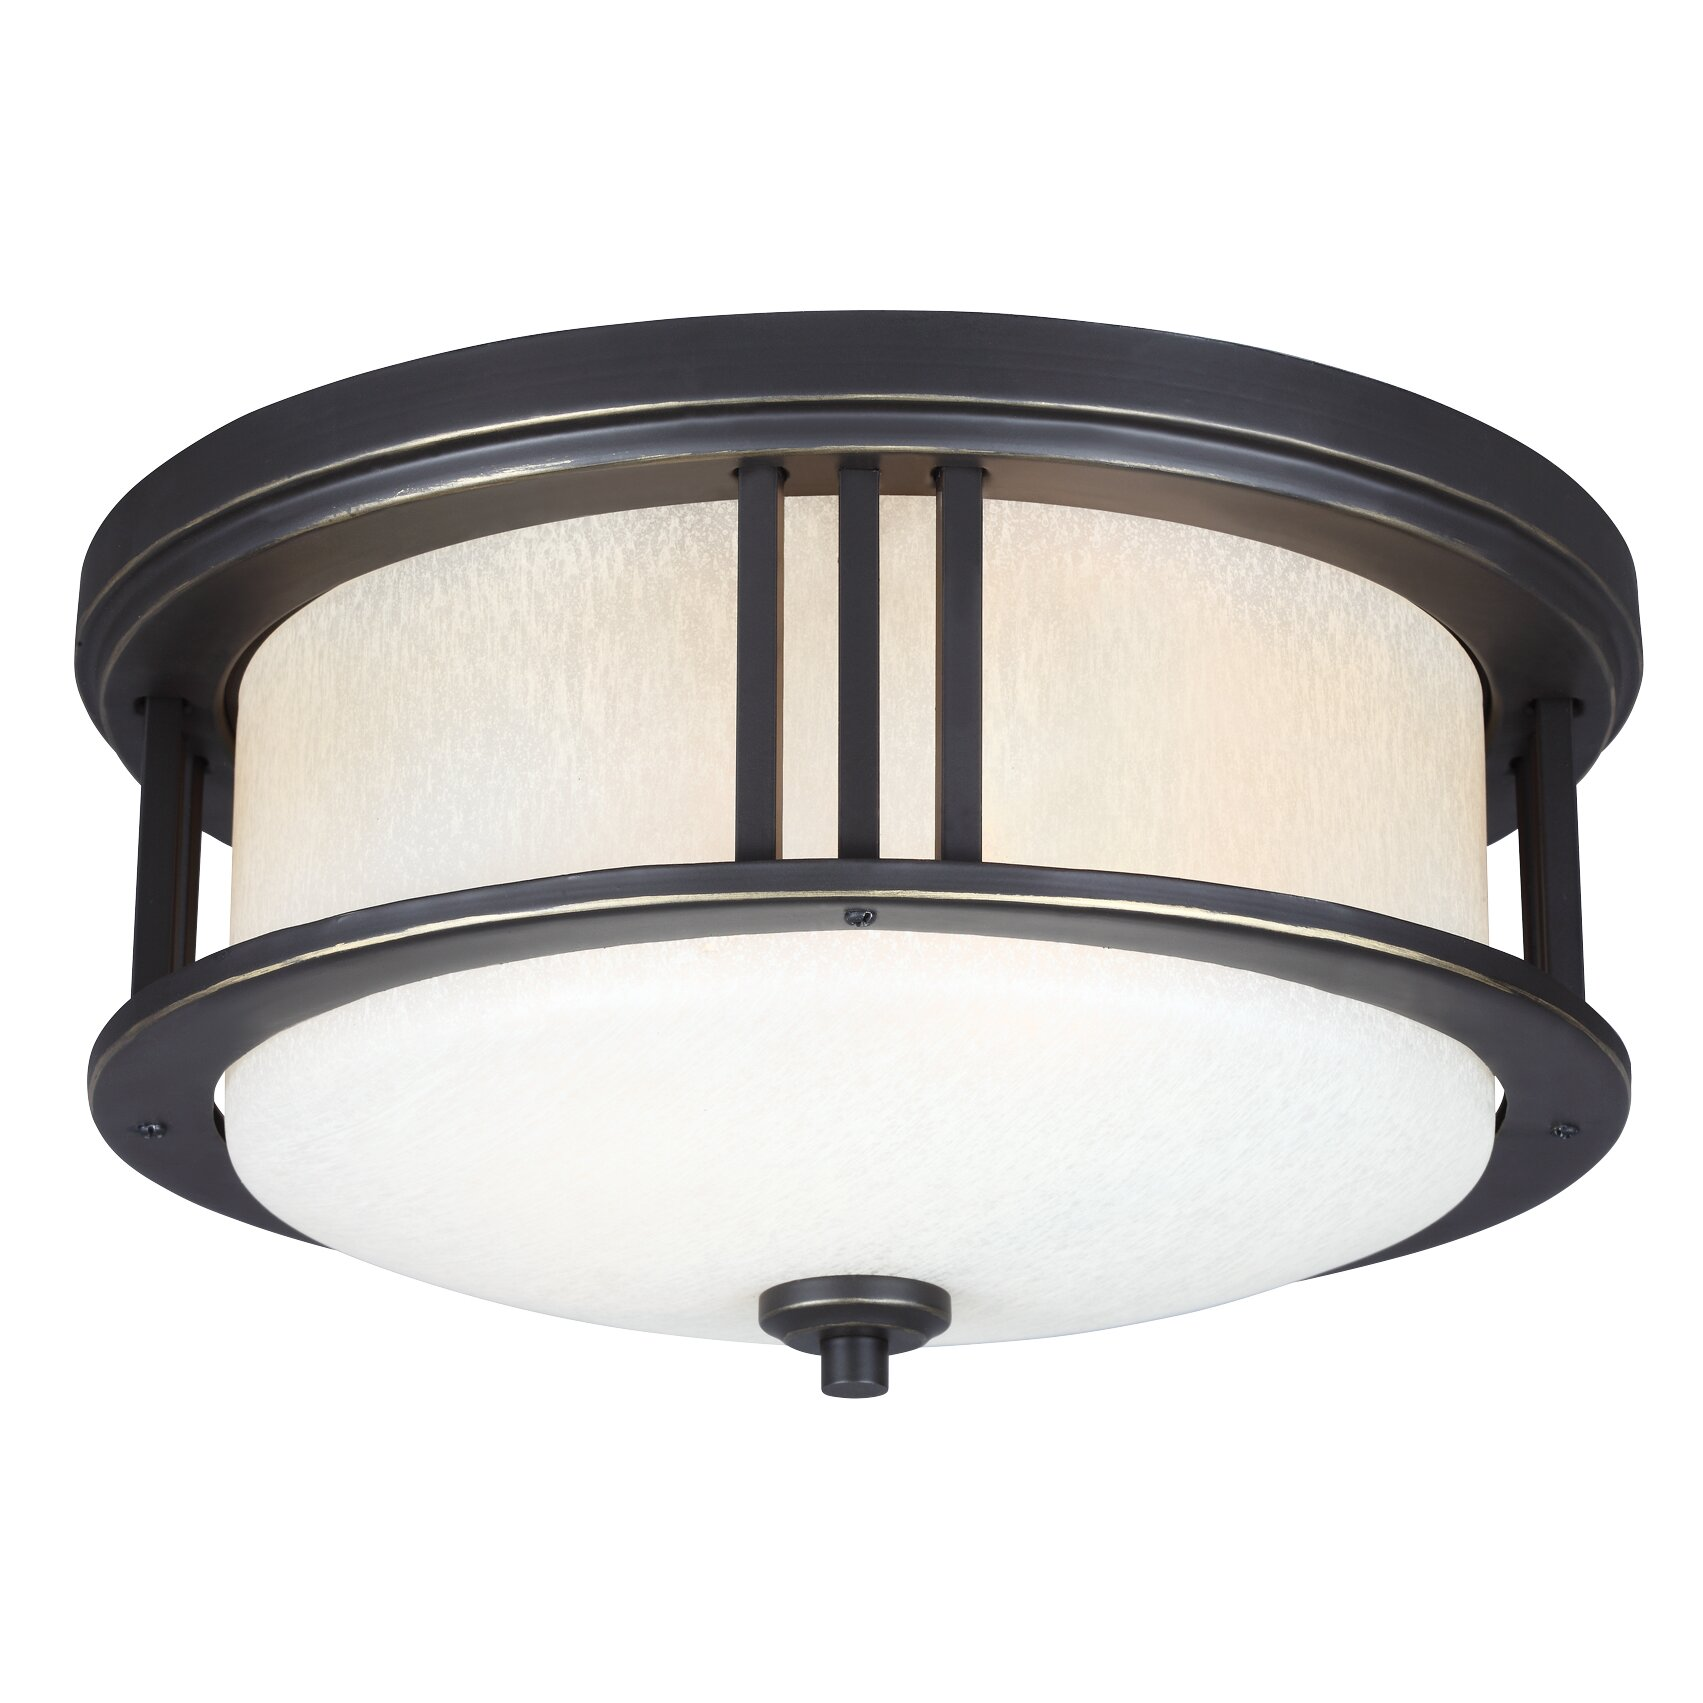 crowell 2 light outdoor ceiling flush mount by sea gull lighting. Black Bedroom Furniture Sets. Home Design Ideas